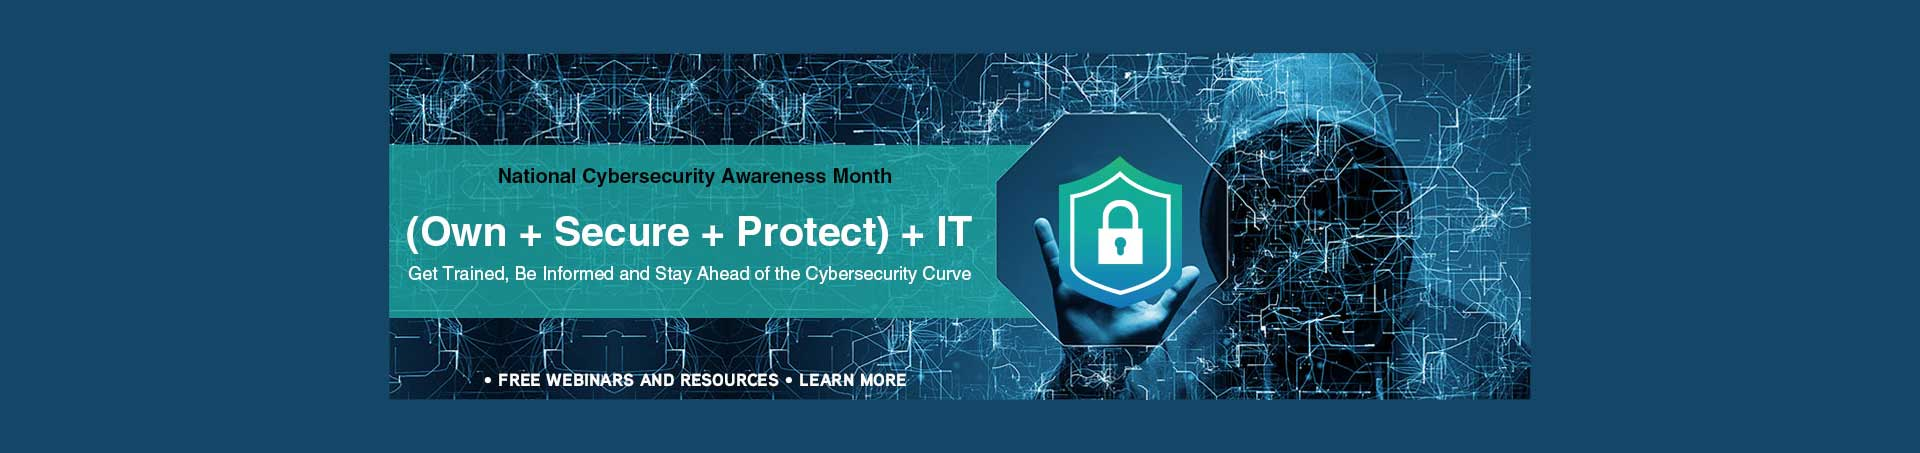 Cybersecurity Promo